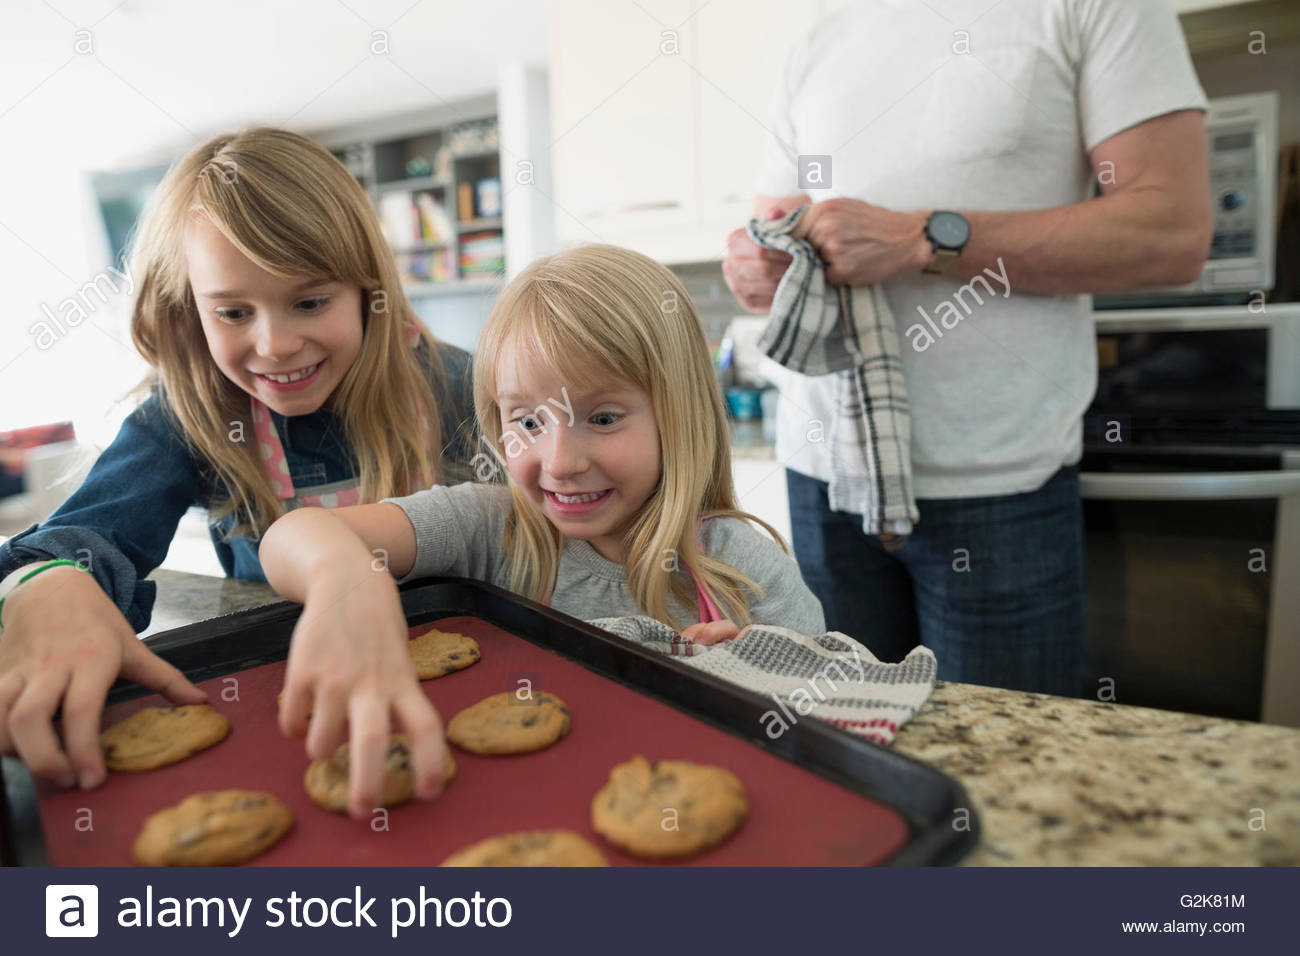 Excited girls reaching for fresh baked cookies in kitchen - Stock Image